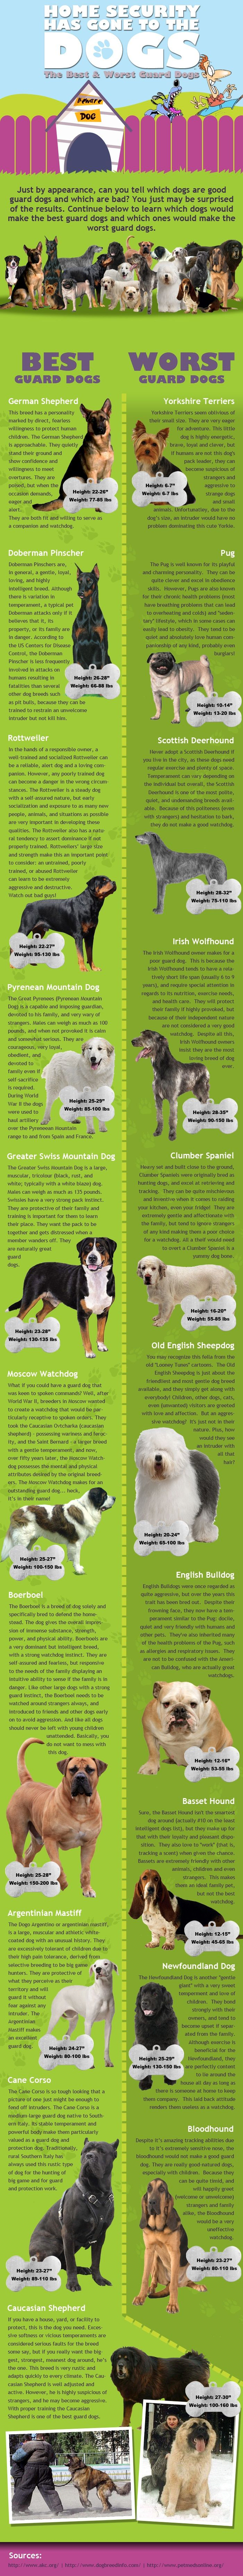 The Best and the Worst Guard Dogs [Infographic] | #Pets #Dogs #Infographic |